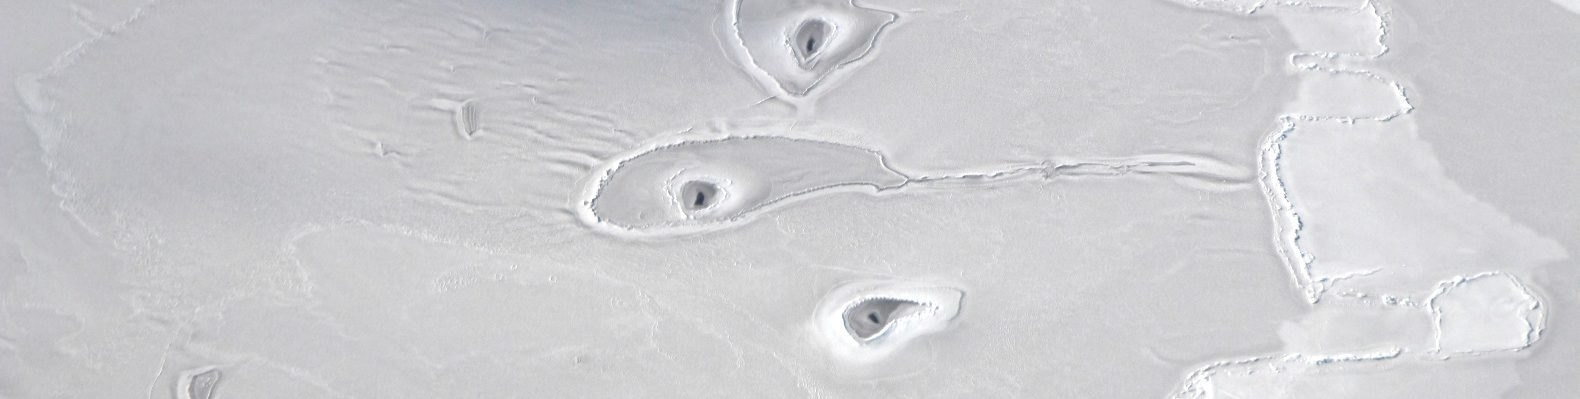 Mysterious holes in Arctic sea ice; image taken by Operation IceBridge